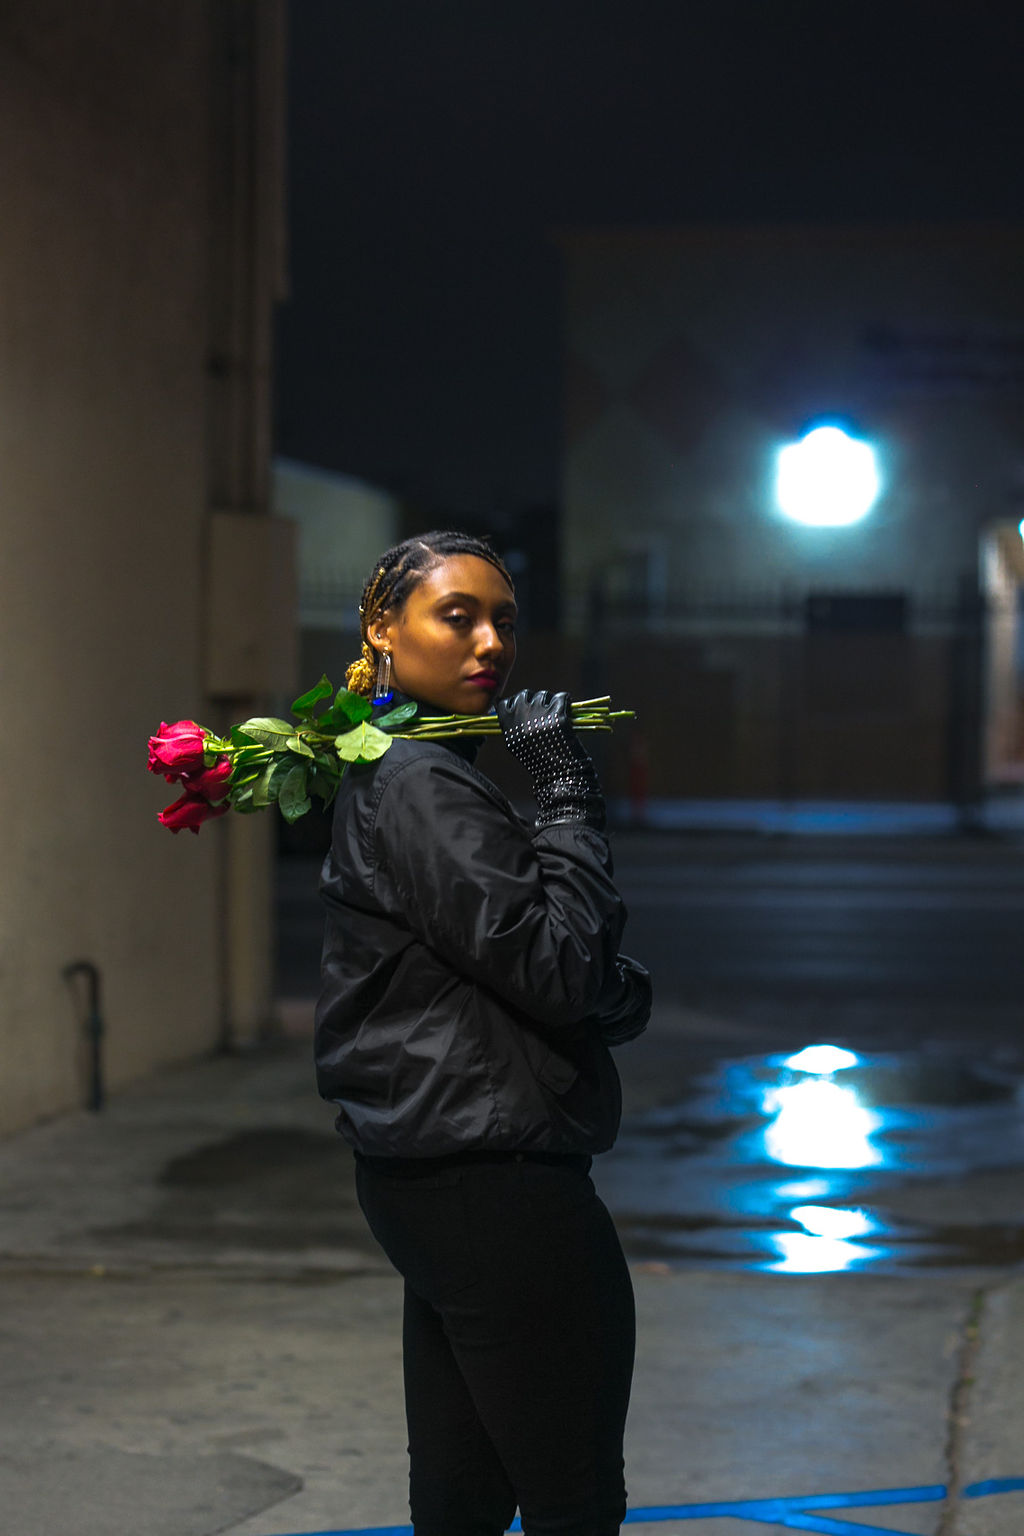 red roses-rsee-xmmtt-wear who you are-lcm-night photography